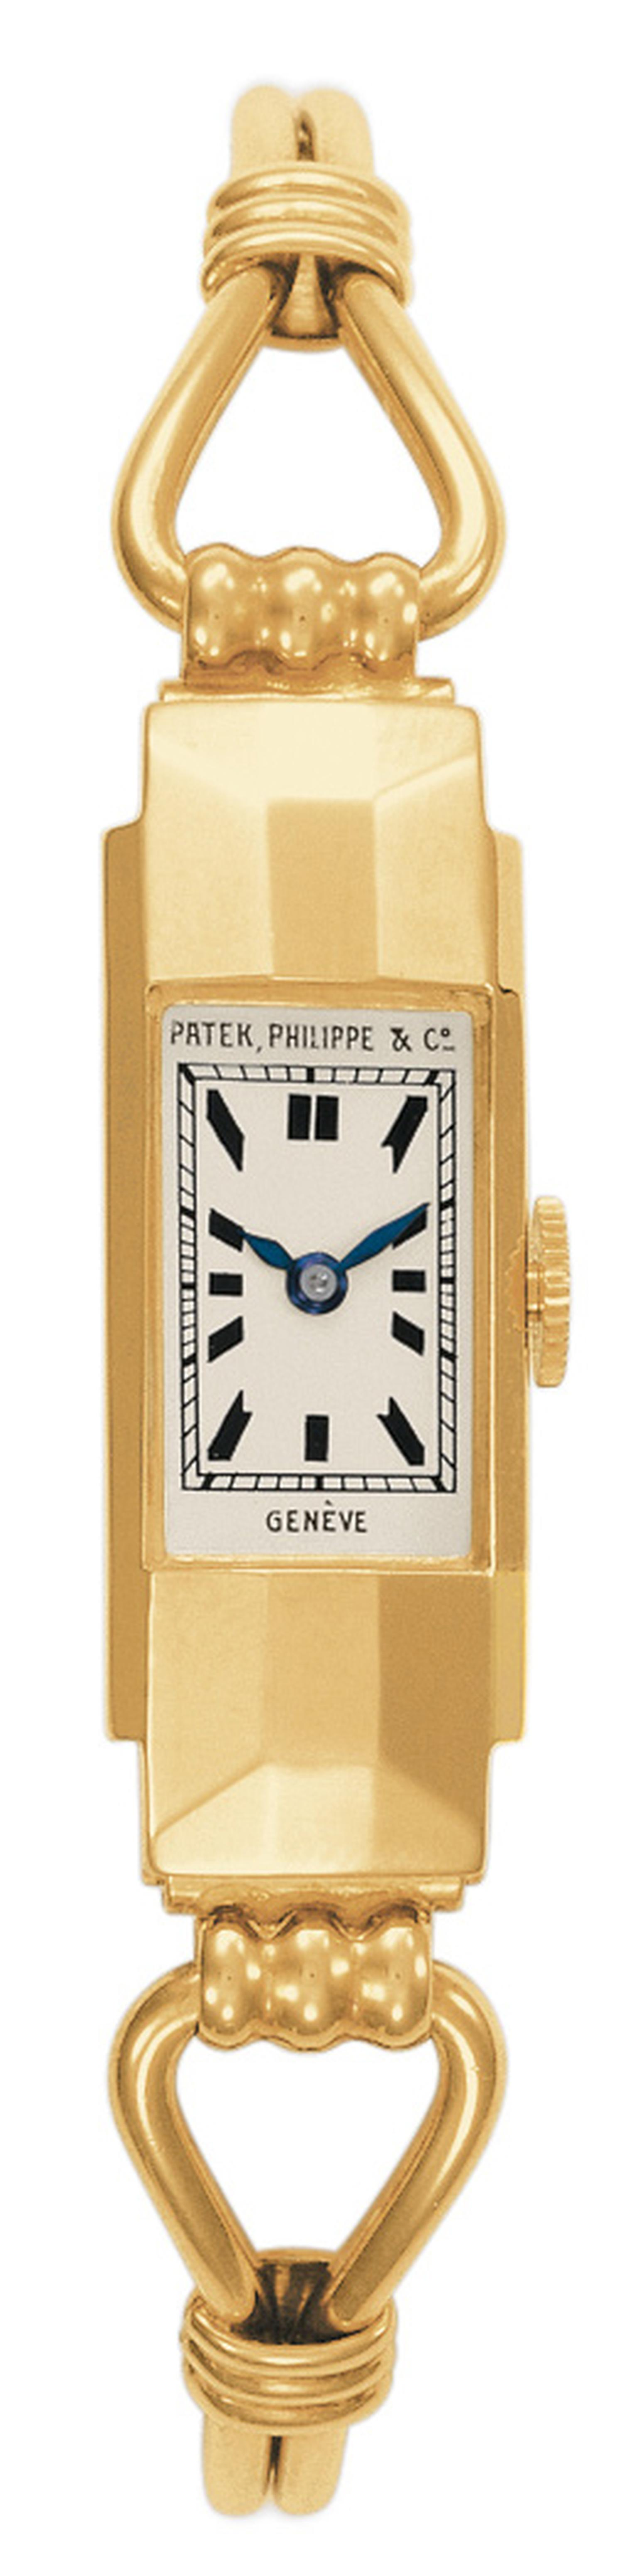 Patek-Philippe-P0707_a_100_collection-1925-40.jpg